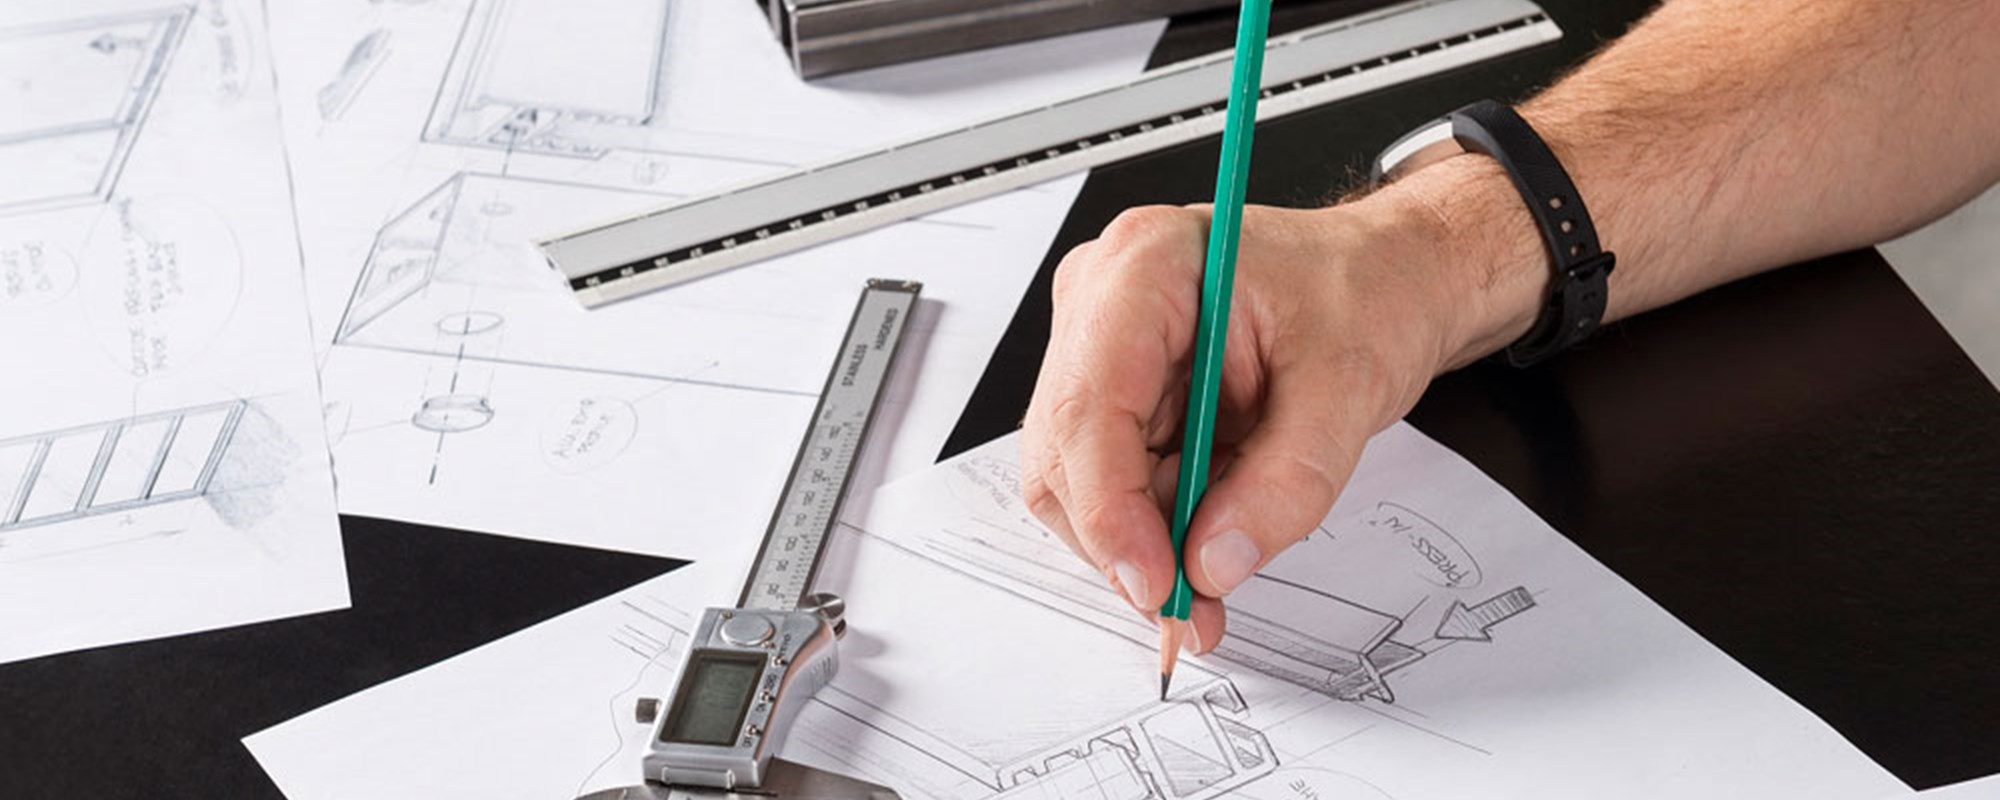 architect designing and drawing